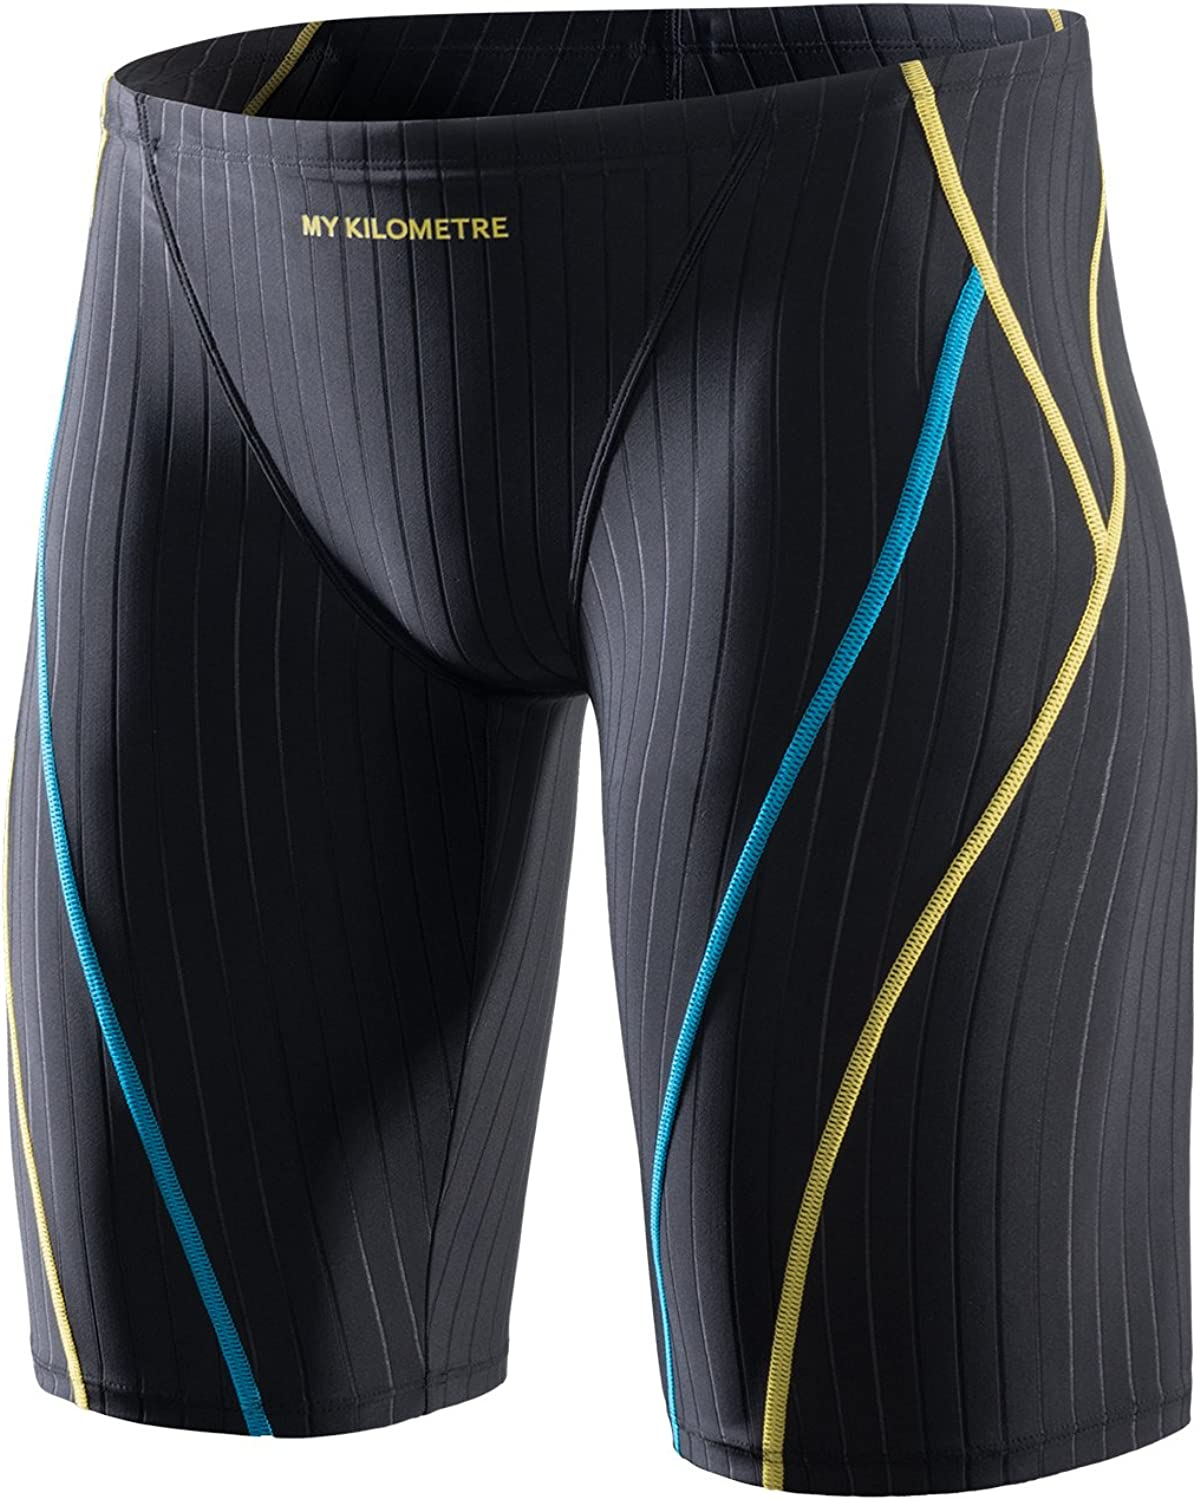 Ispeed Mens Competition Jammer Swimsuit